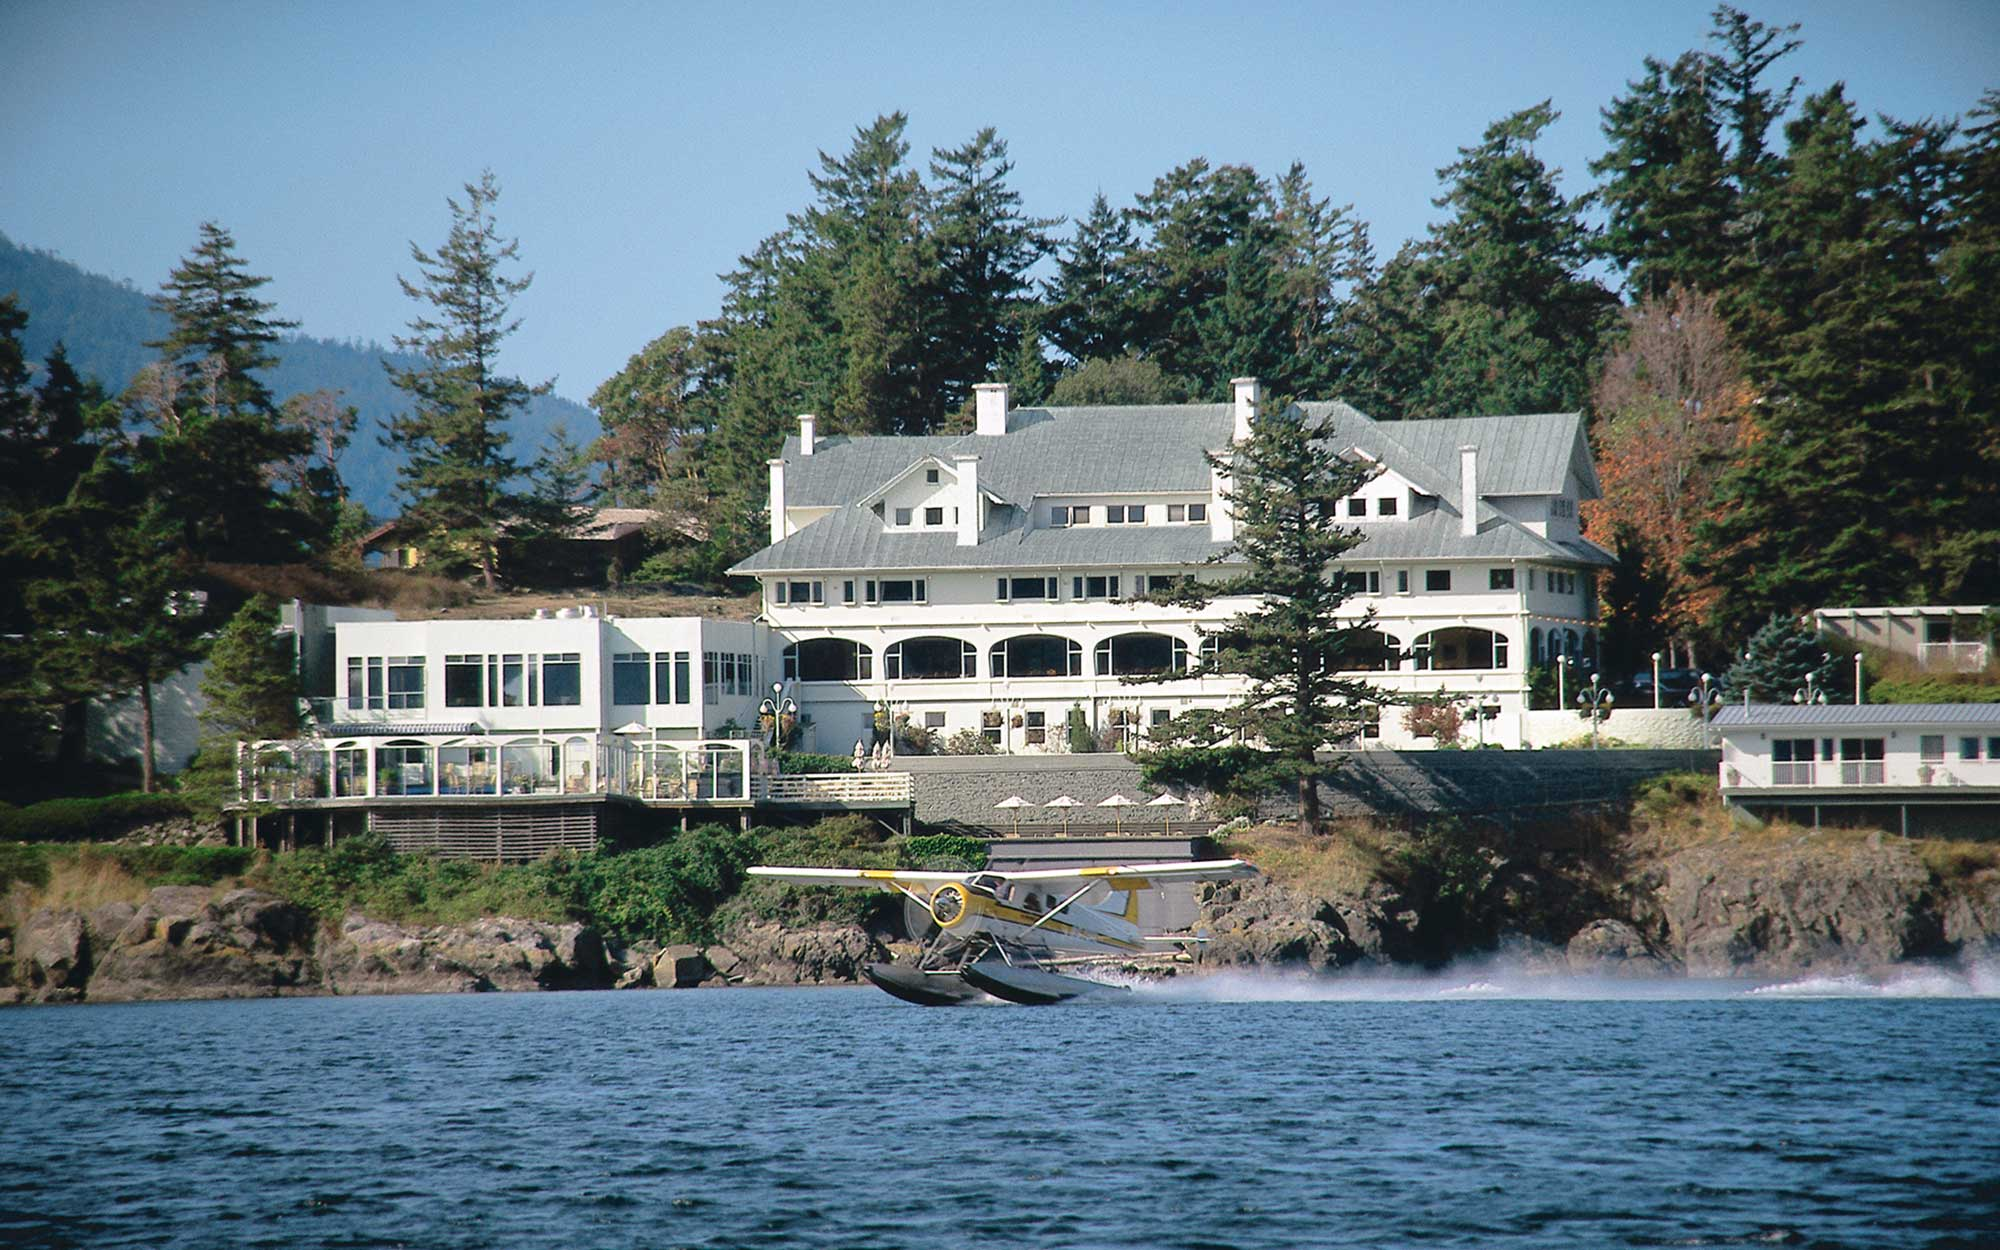 Best Romantic Summer Getaways: San Juan Islands, Washington